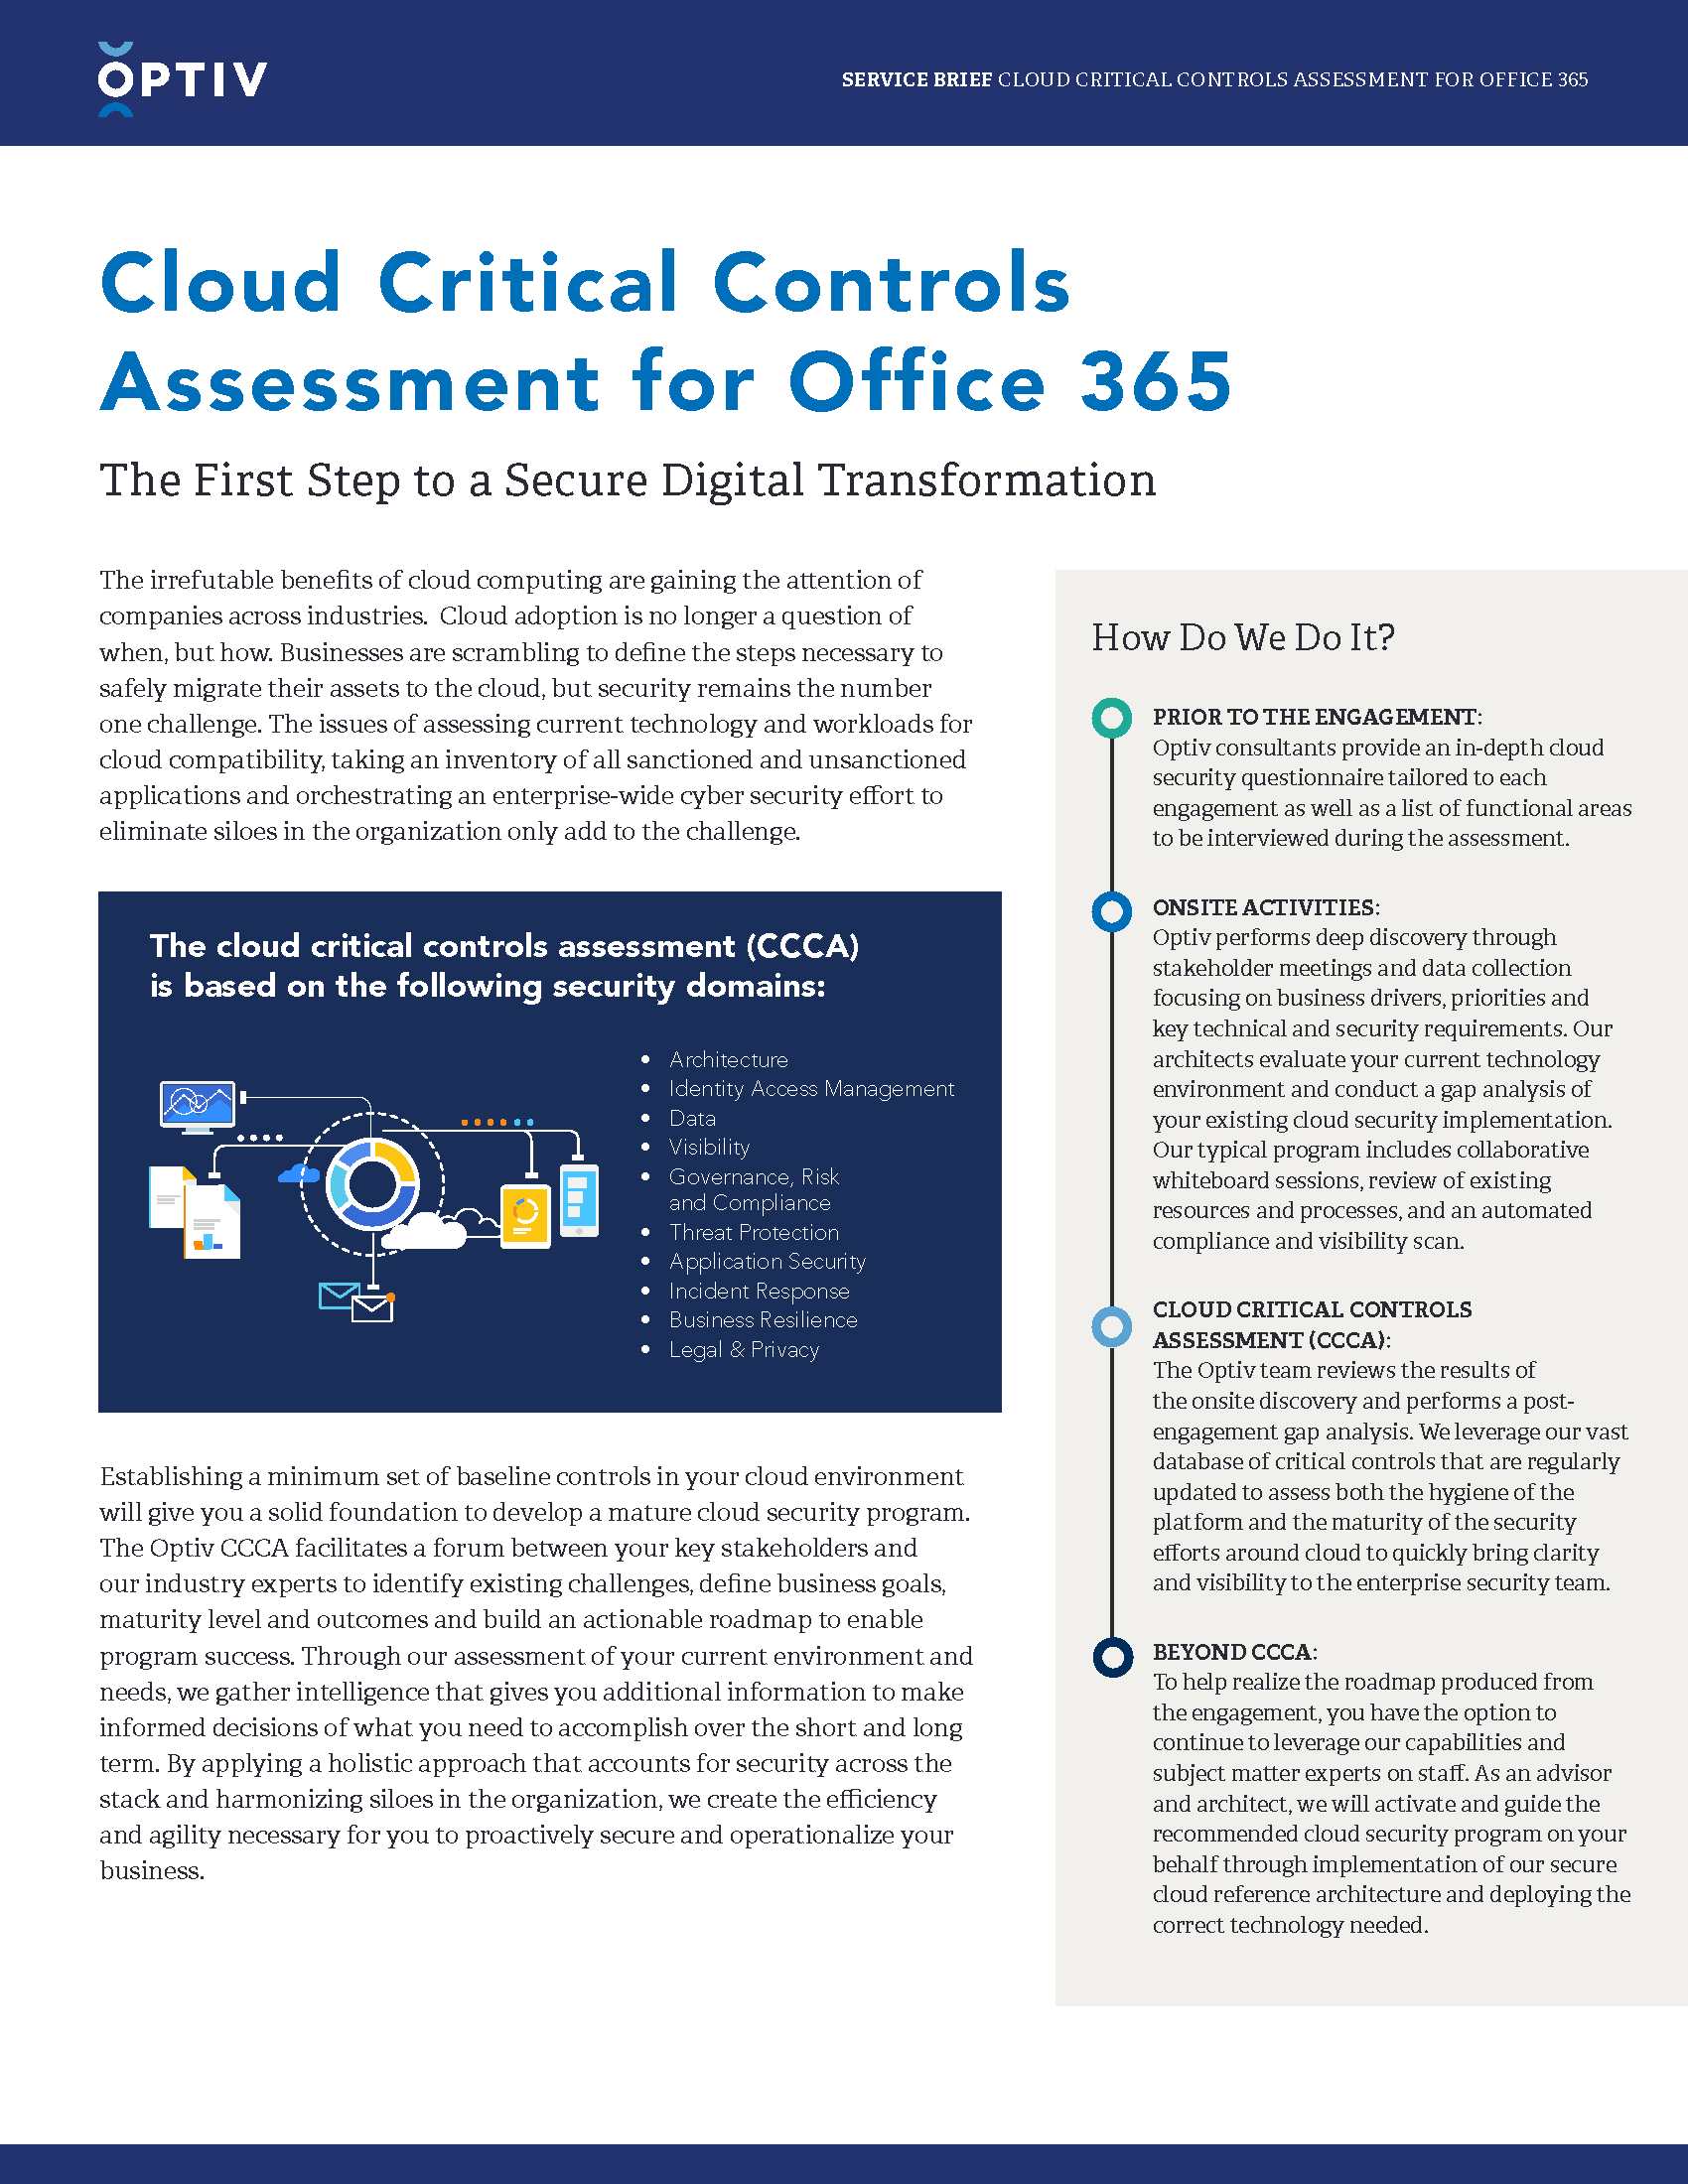 Cloud Critical Controls Assessment For Office 365 Data Security Program The Optiv Facilitates A Forum Between Your Key Stakeholders And Our Industry Experts To Identify Existing